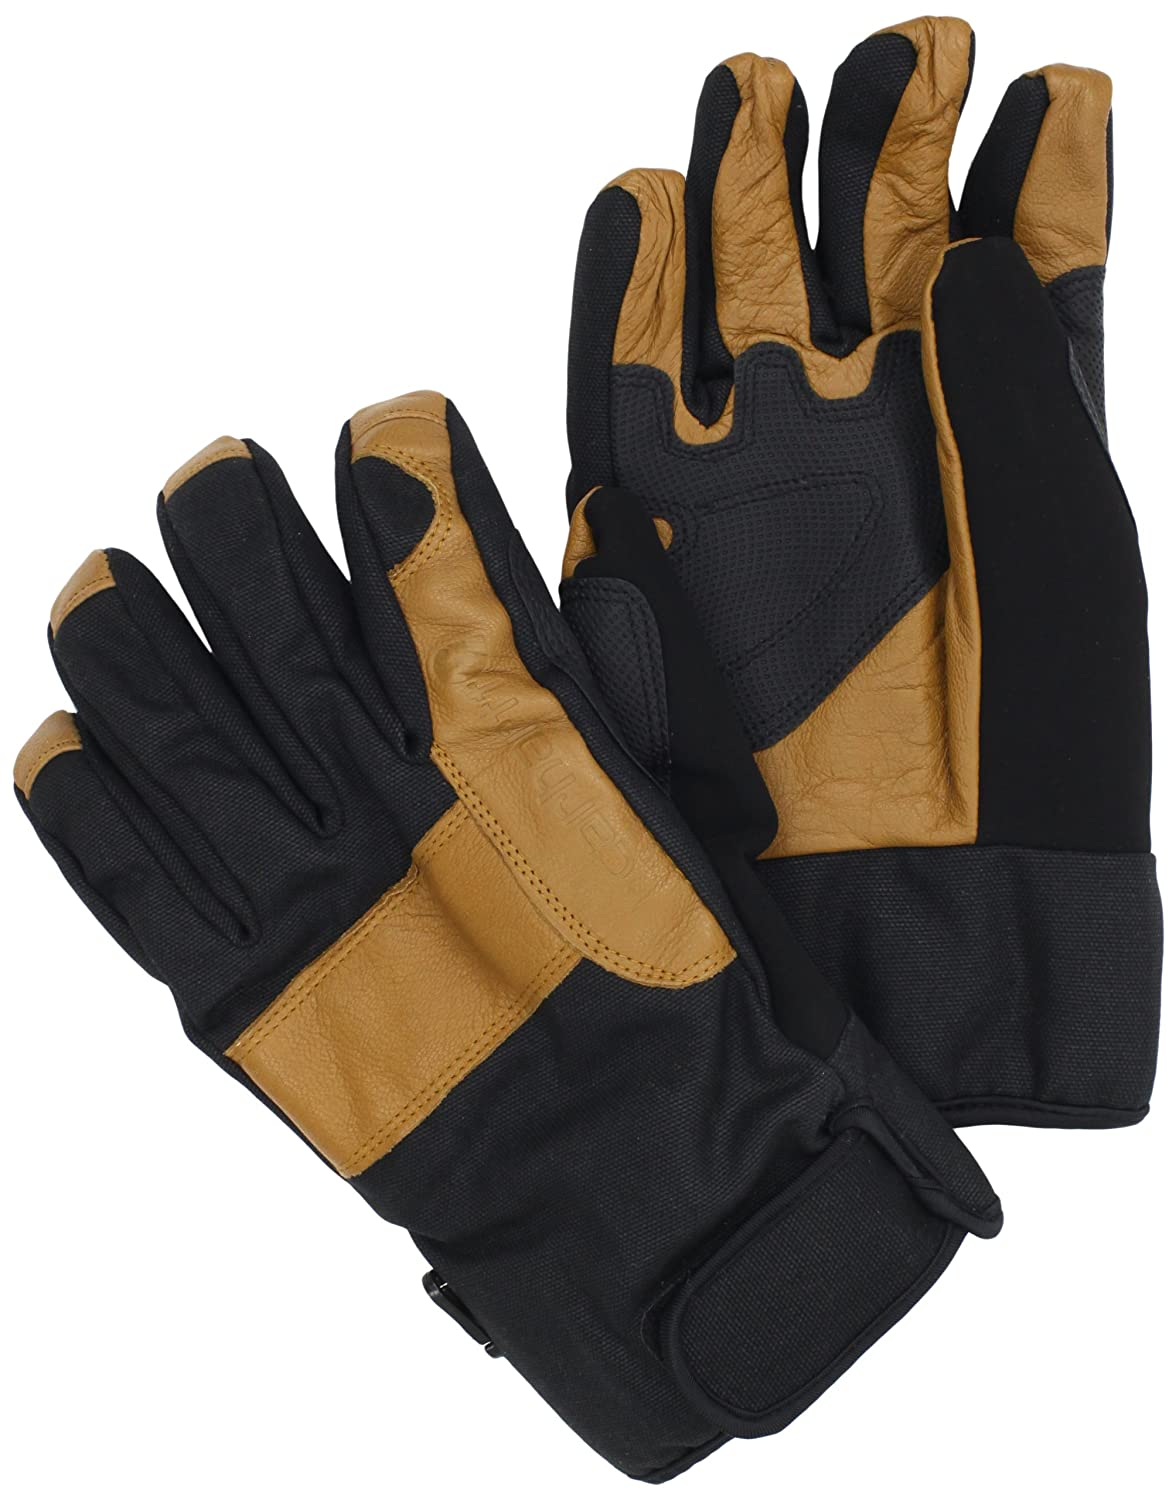 Carhartt Men's Chill Stopper Waterproof Insulated Work Glove, Black/Barley, Large A508